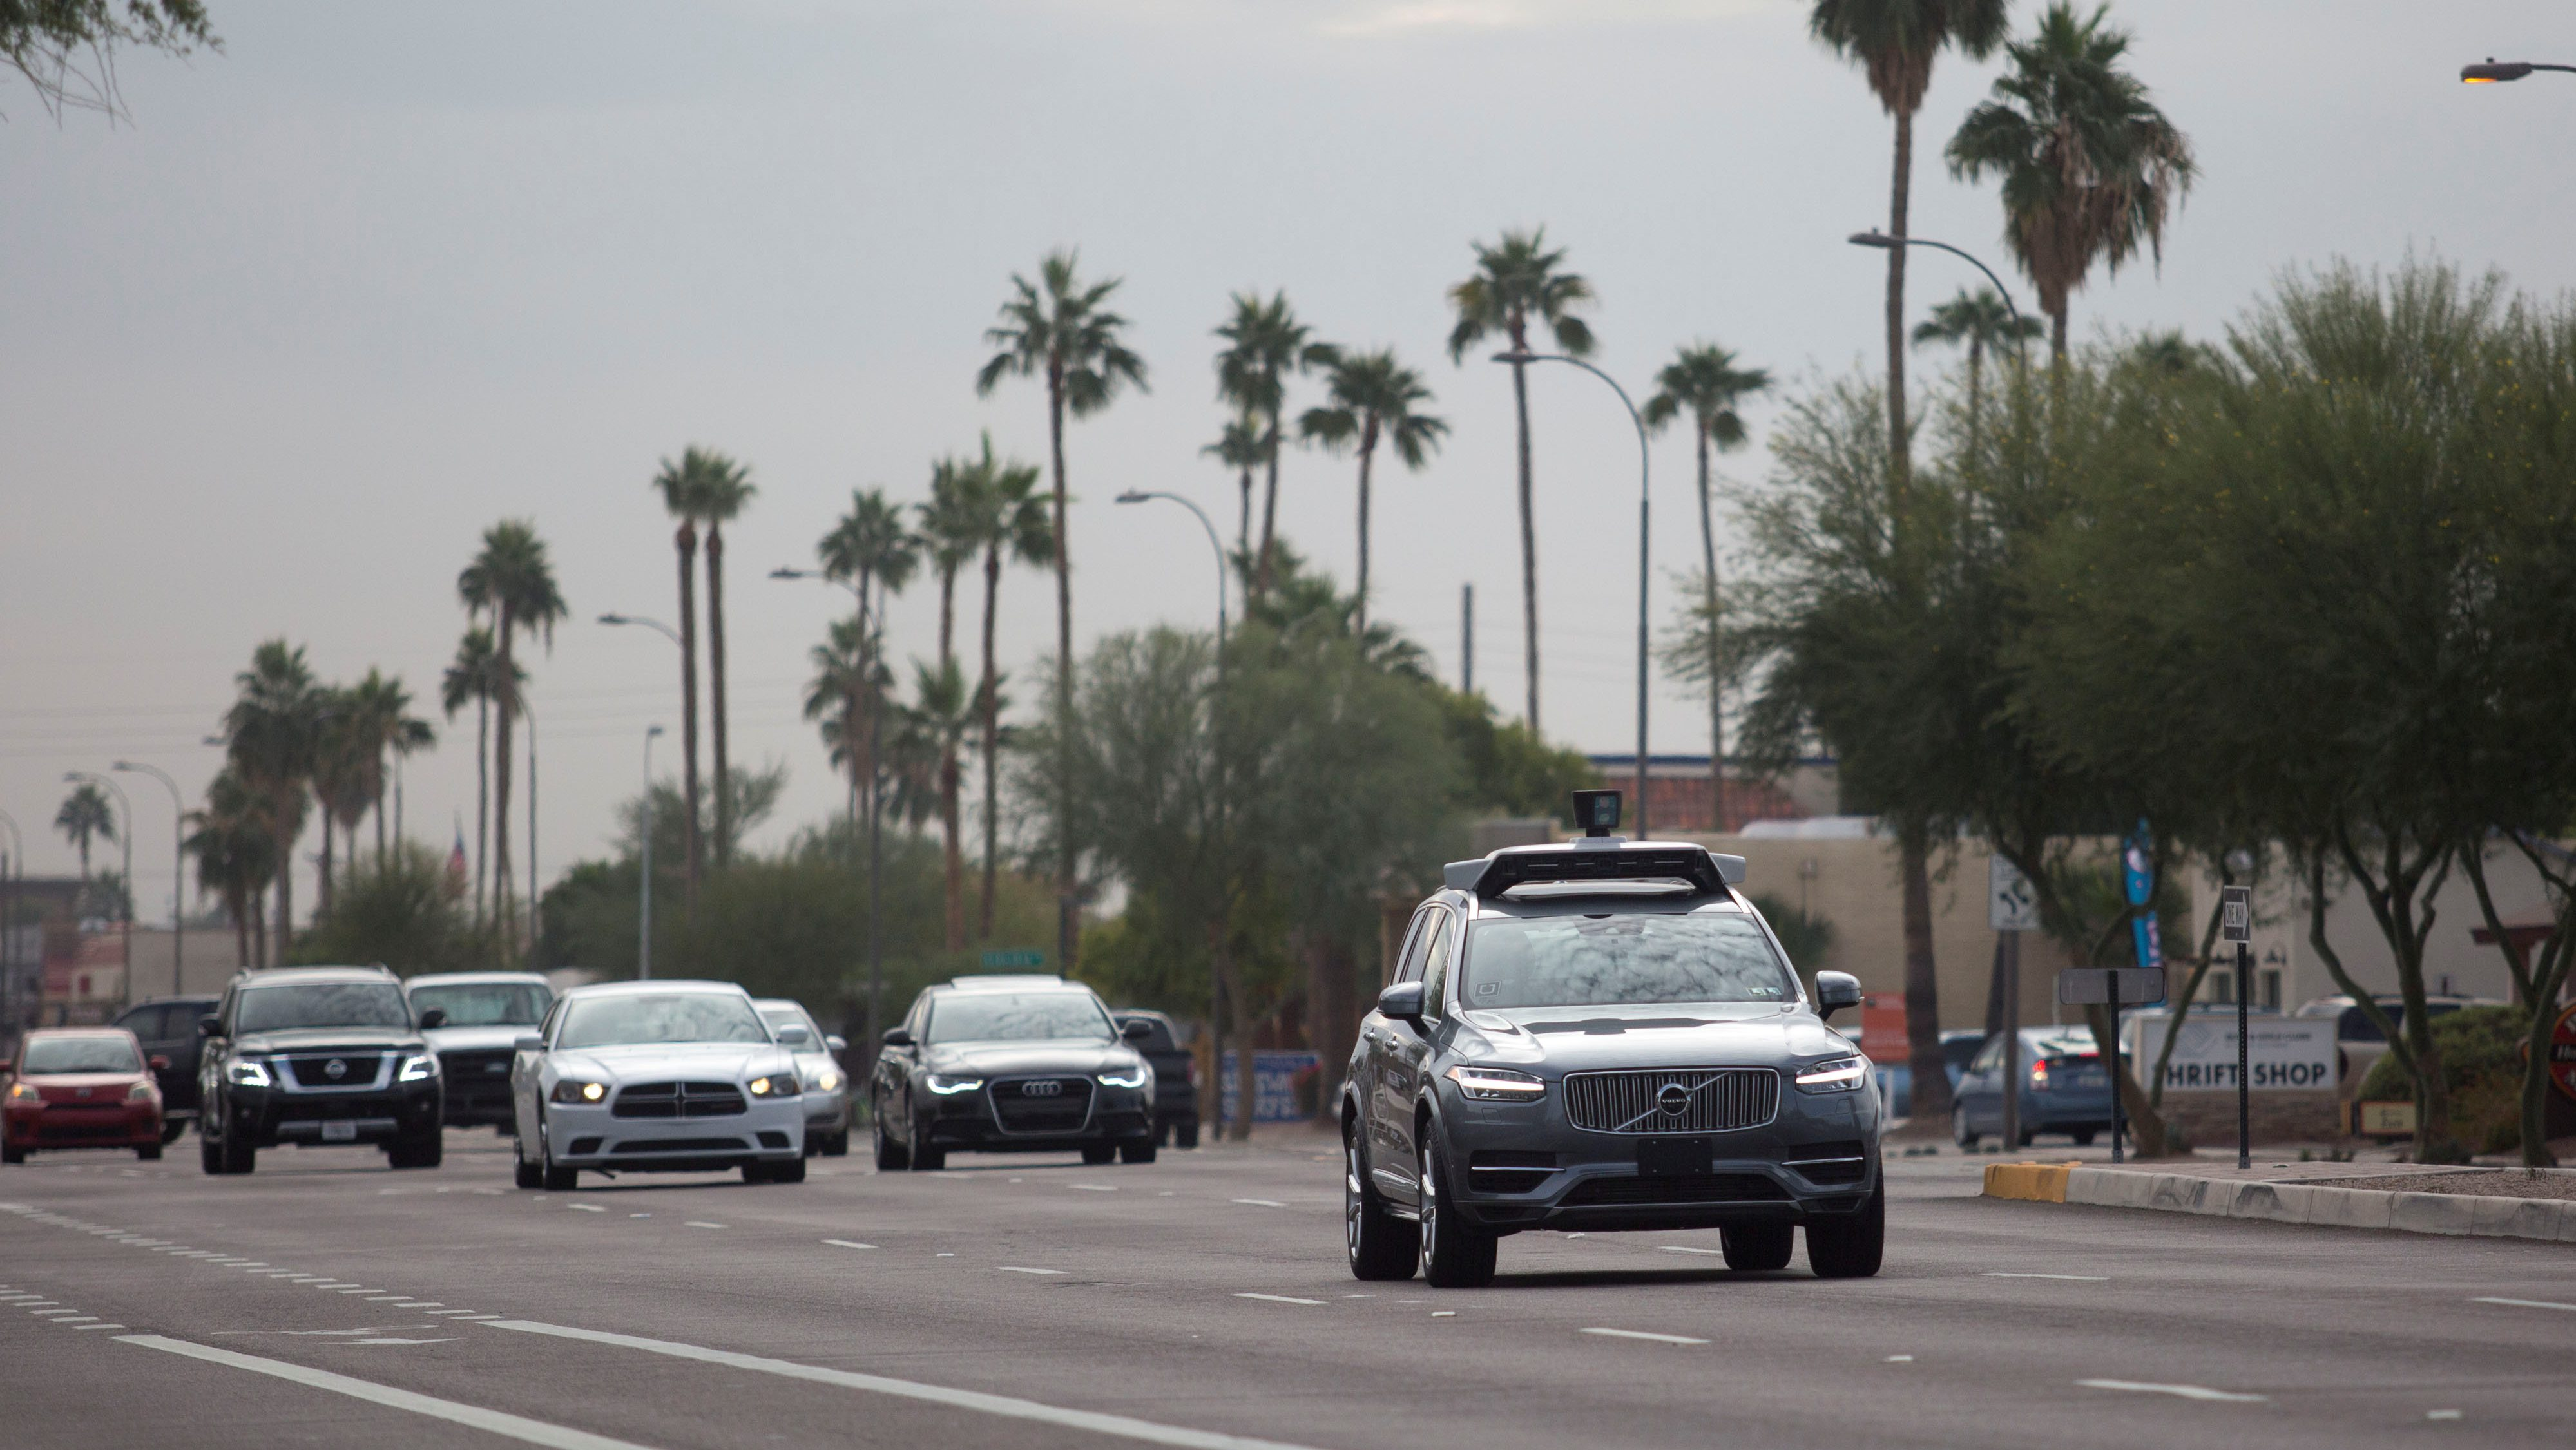 A self driving Volvo vehicle, purchased by Uber, moves along the streets of Scottsdale, Arizona, U.S., December 1, 2017.  Photo taken on December 1, 2017.  REUTERS/Natalie Behring - RC13FBC23080